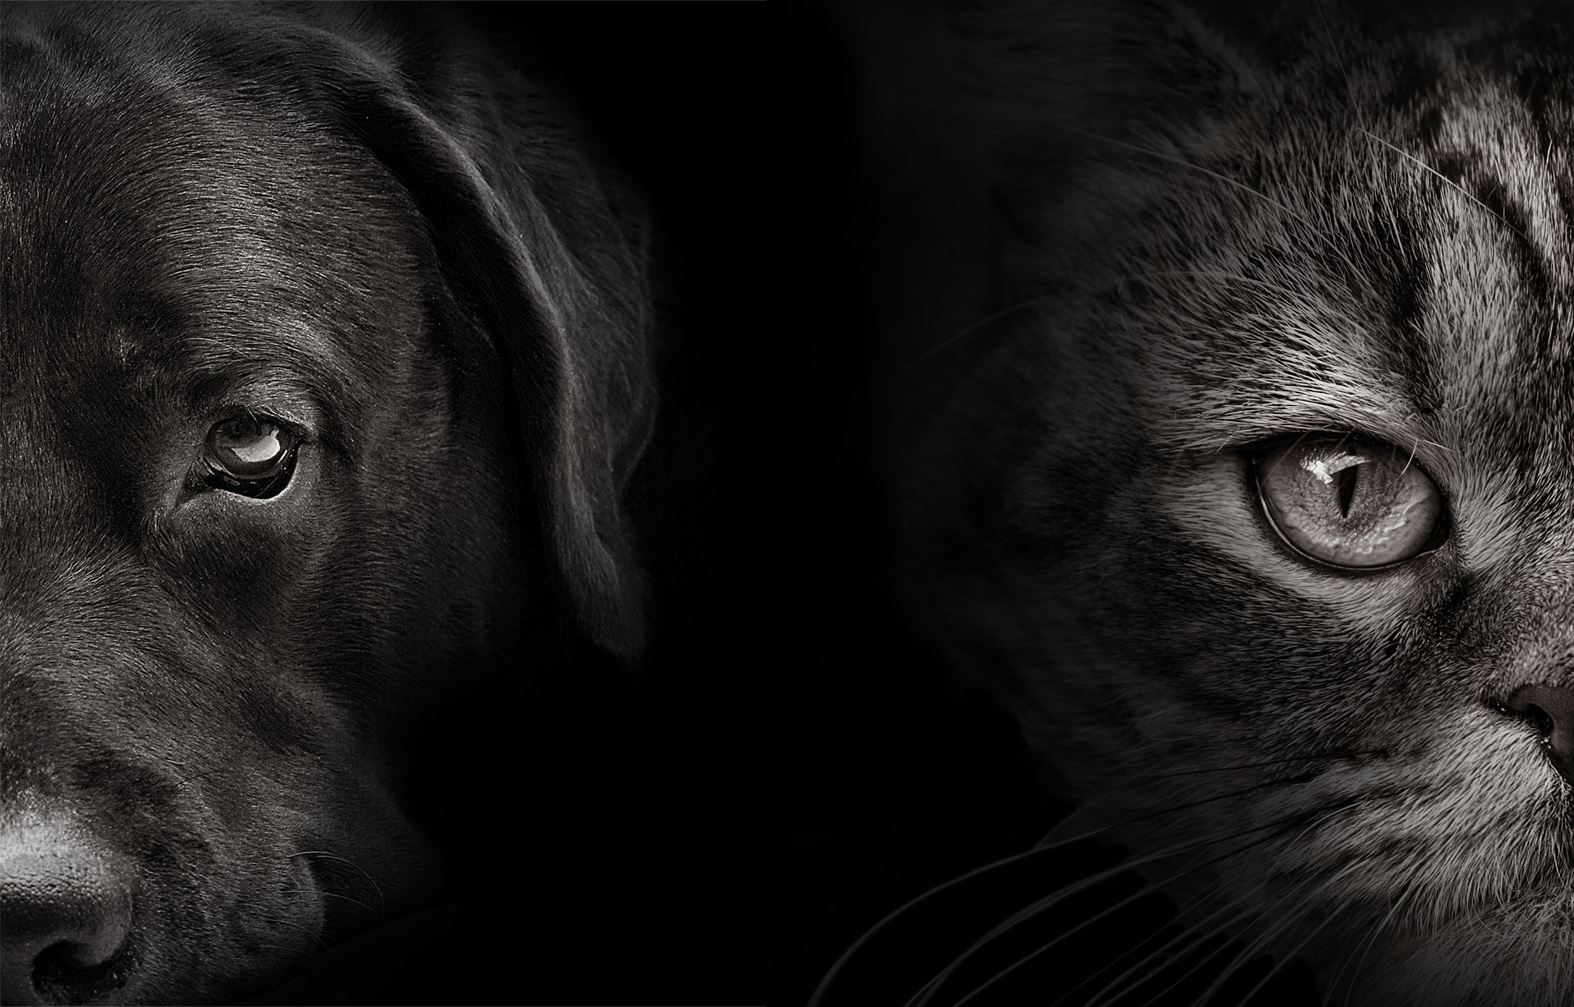 Dog-and-cat-edited